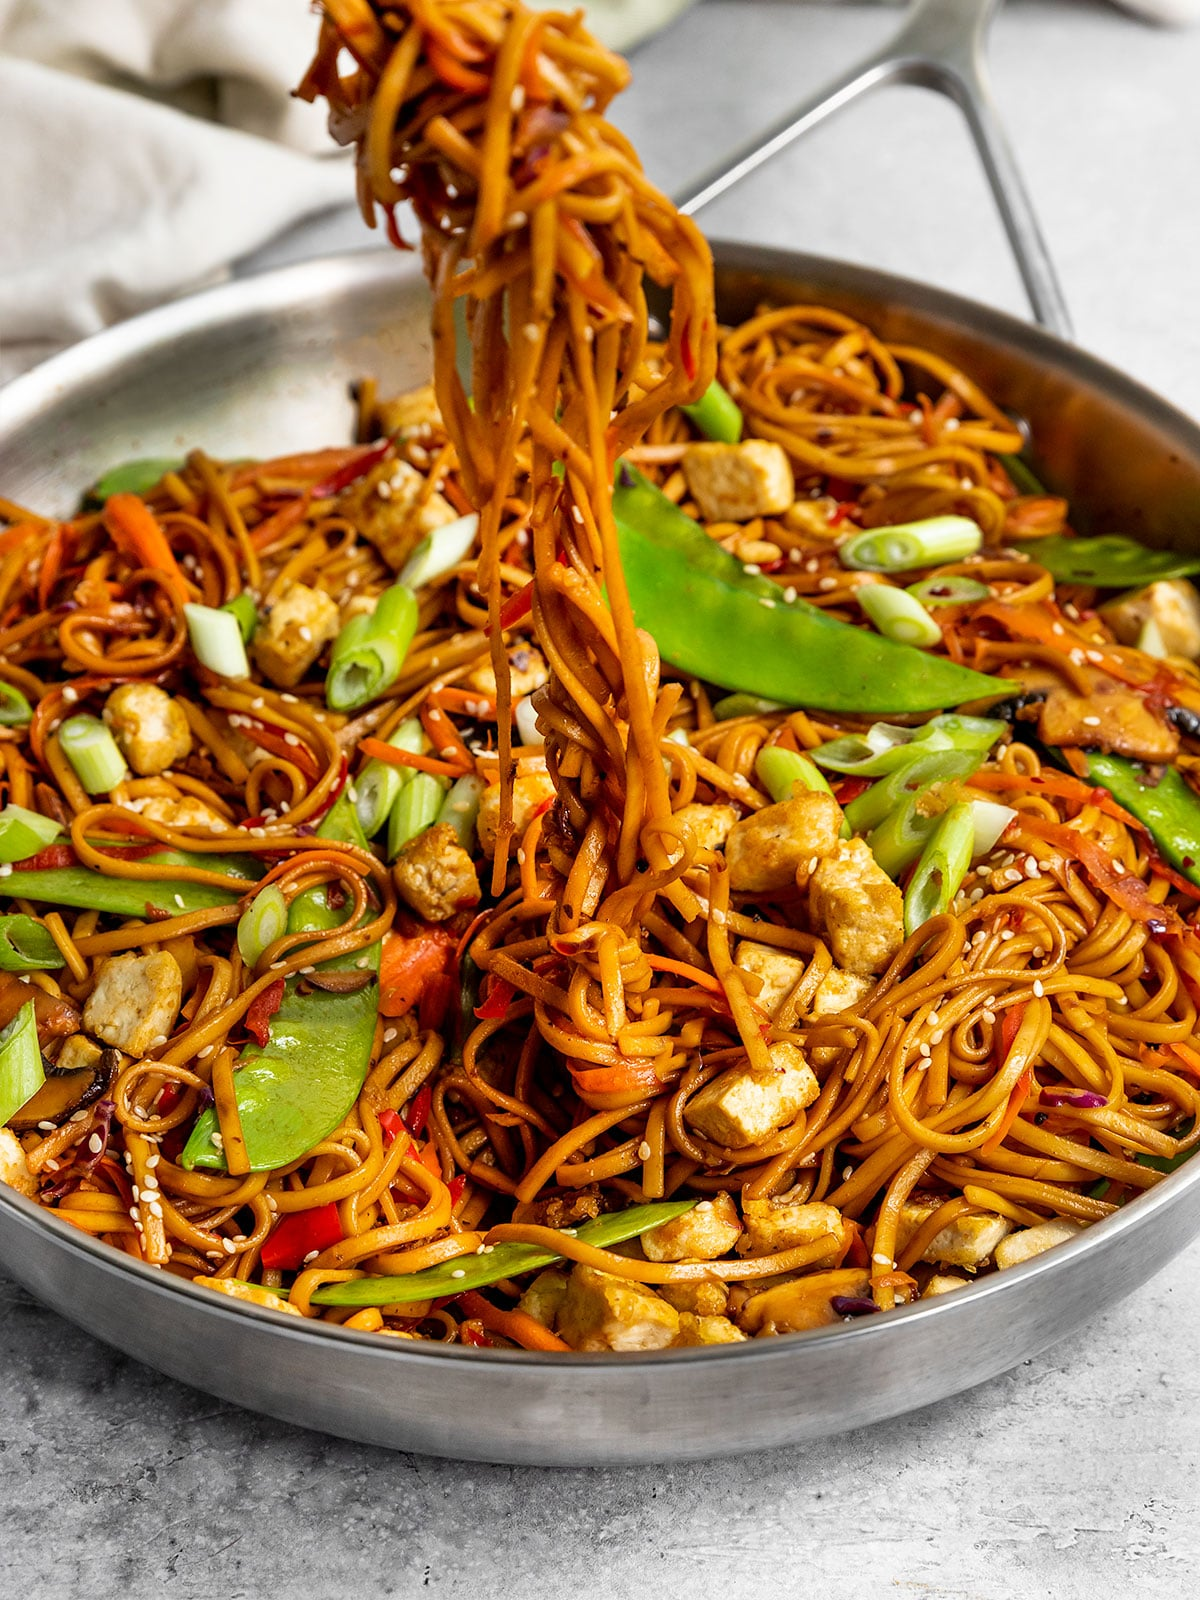 lo mein noodles with vegetables being pulled out of a pan